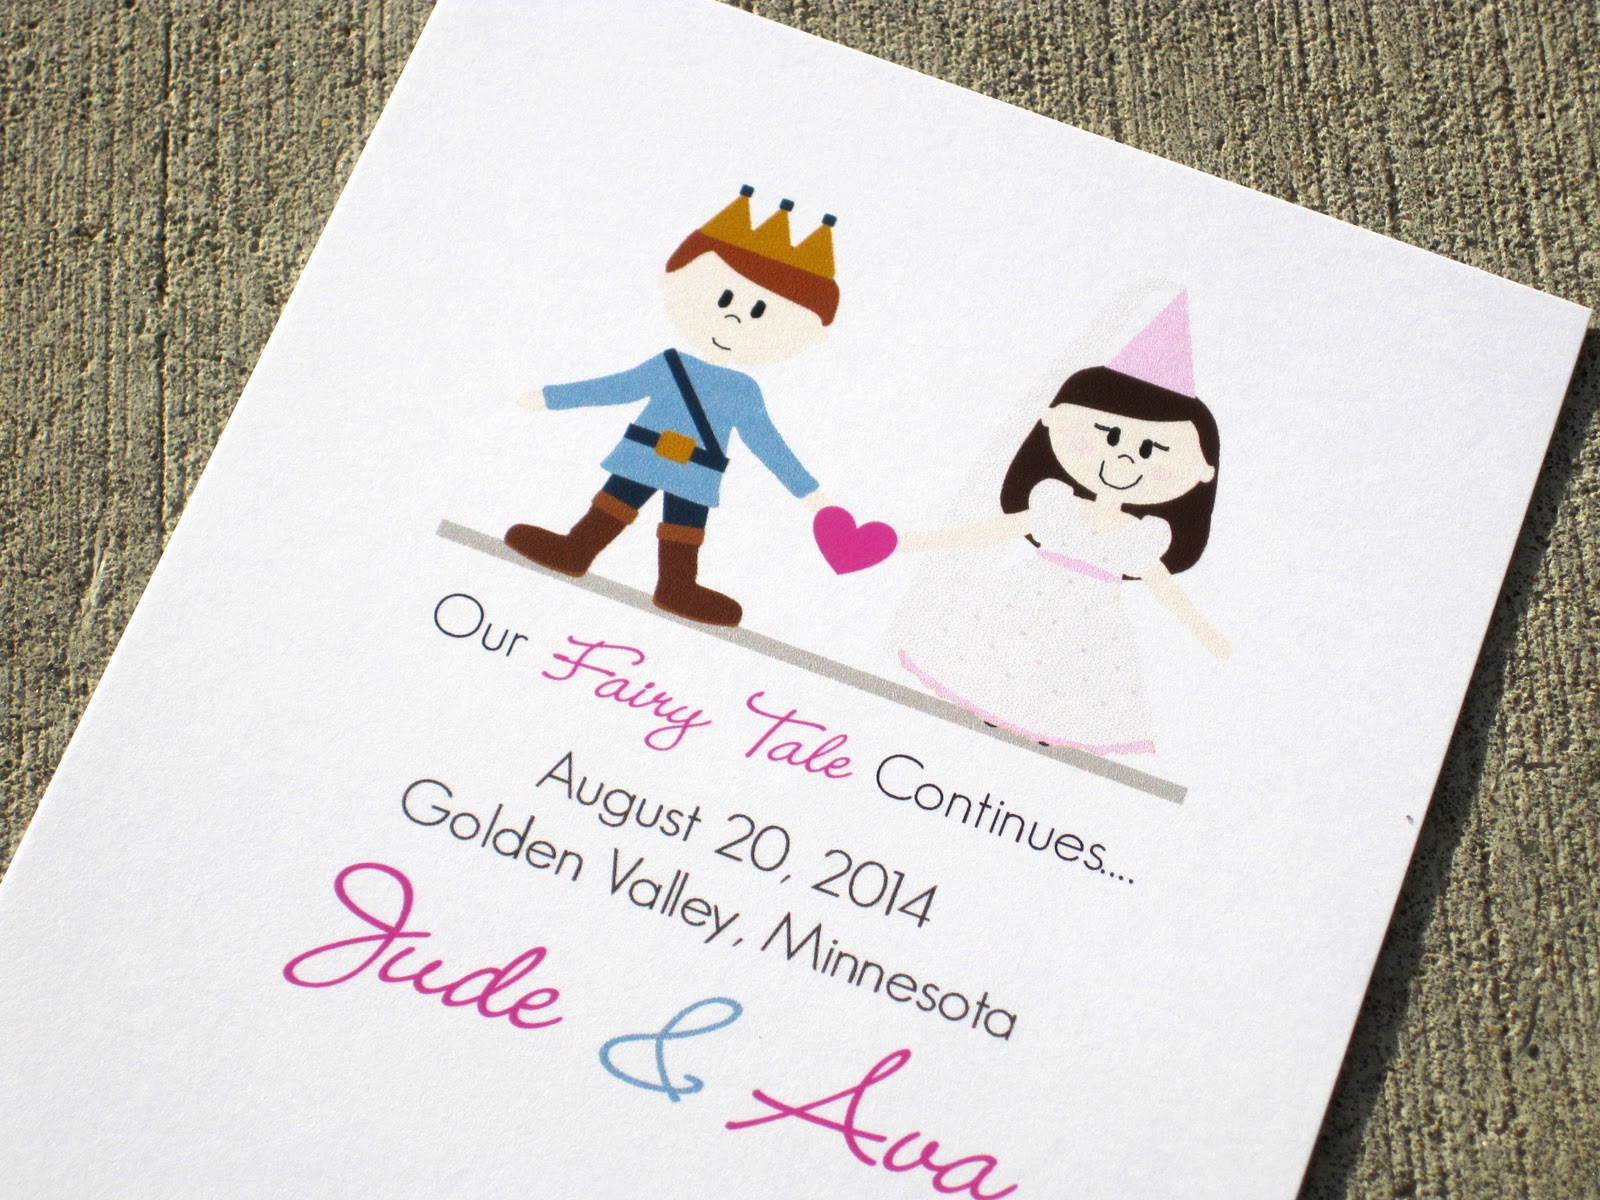 Cute Short Quotes for Wedding Invitations